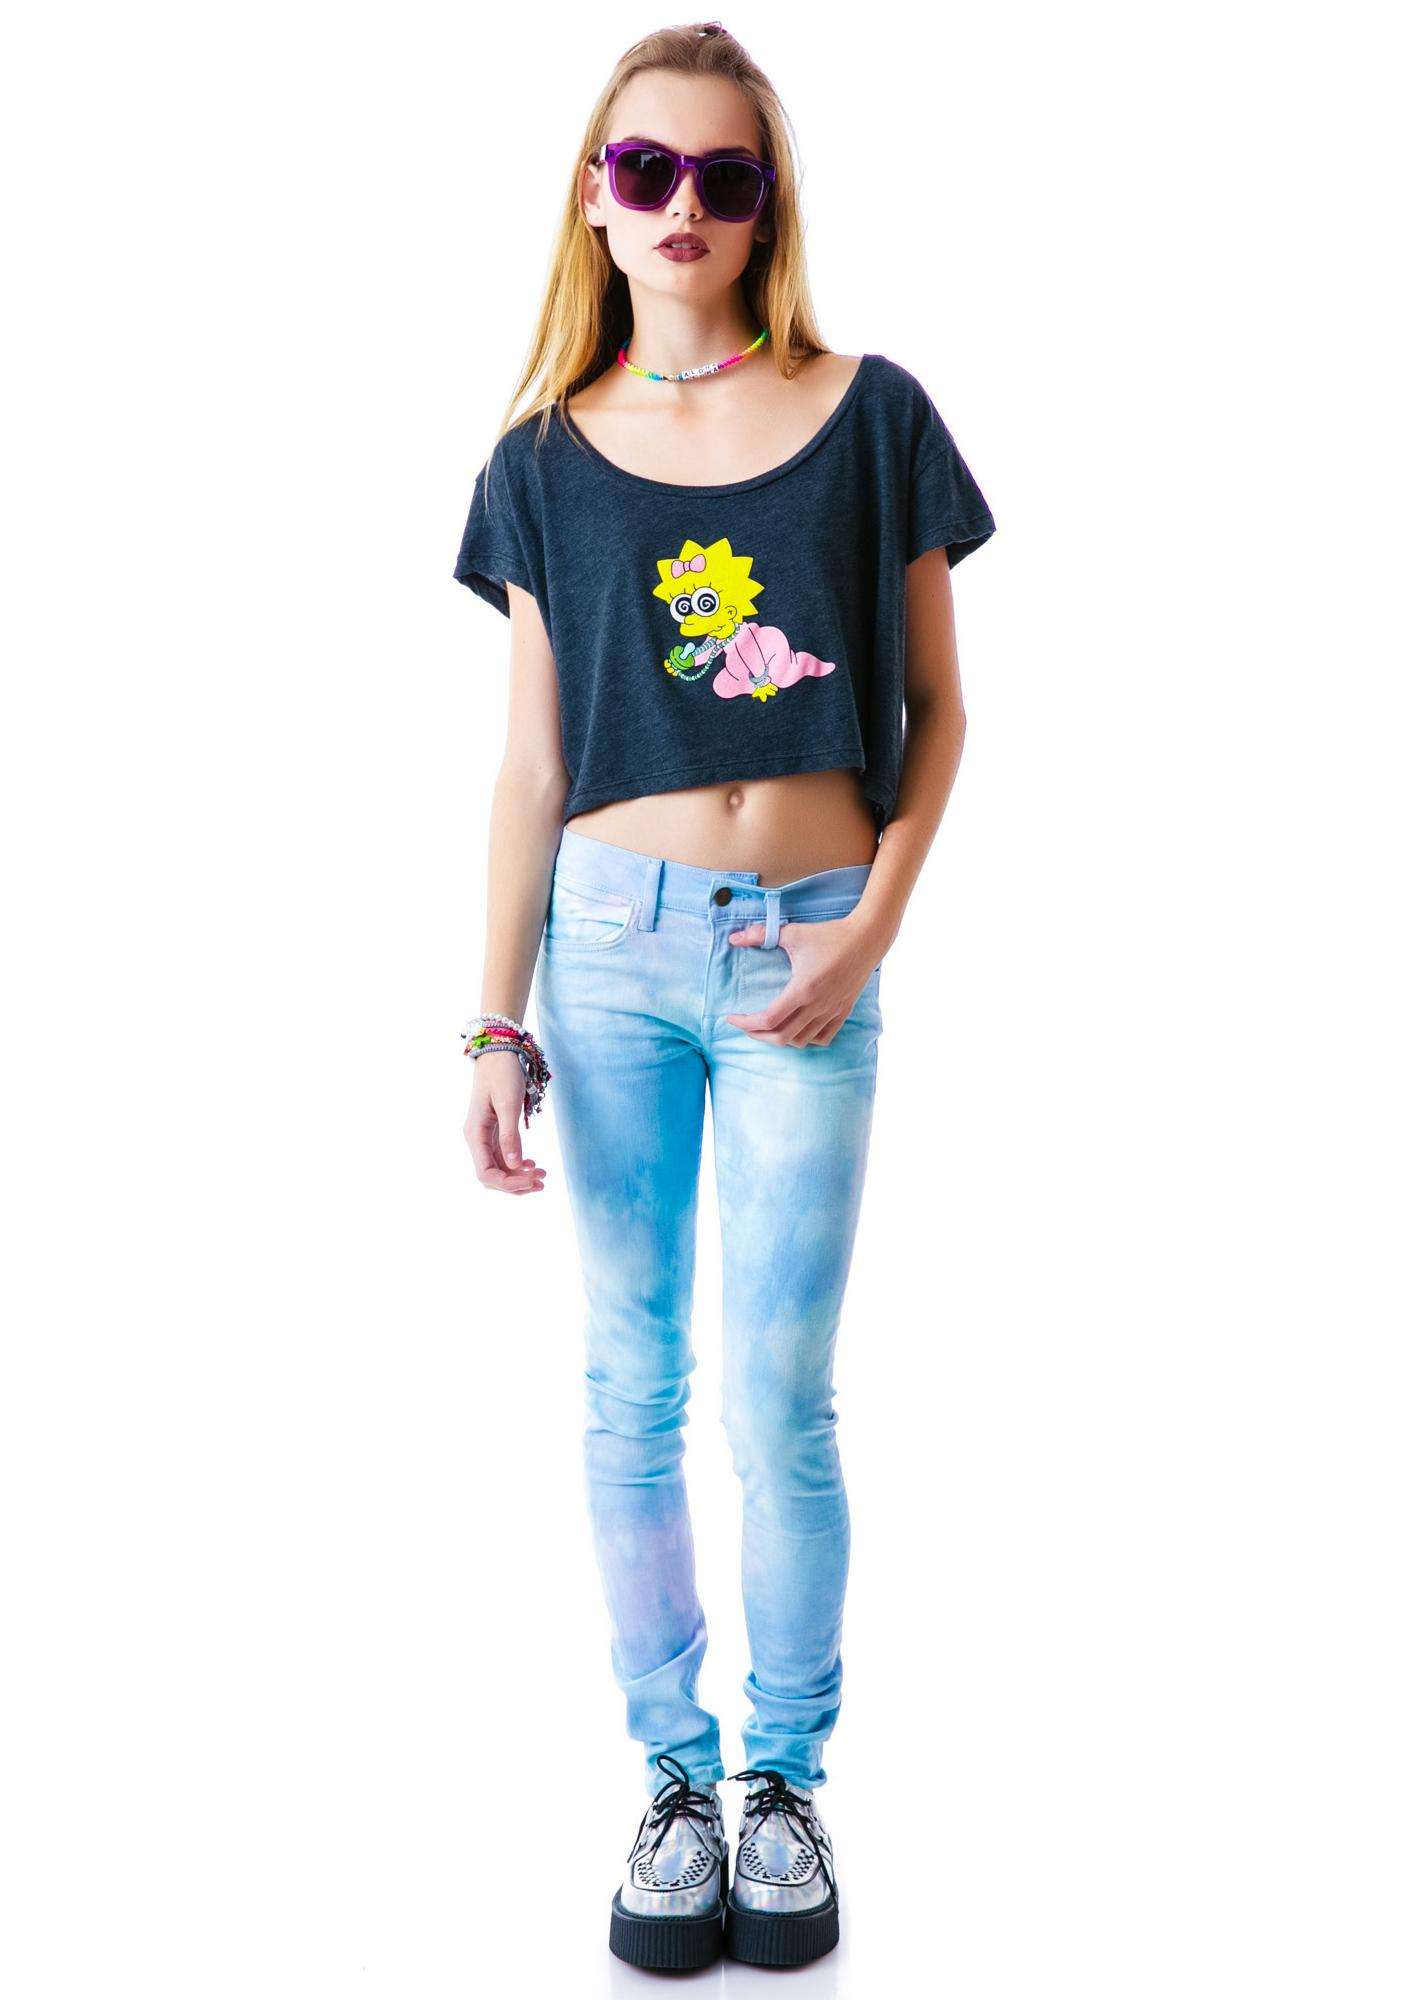 Petals and Peacocks Magg-E Cropped Tee